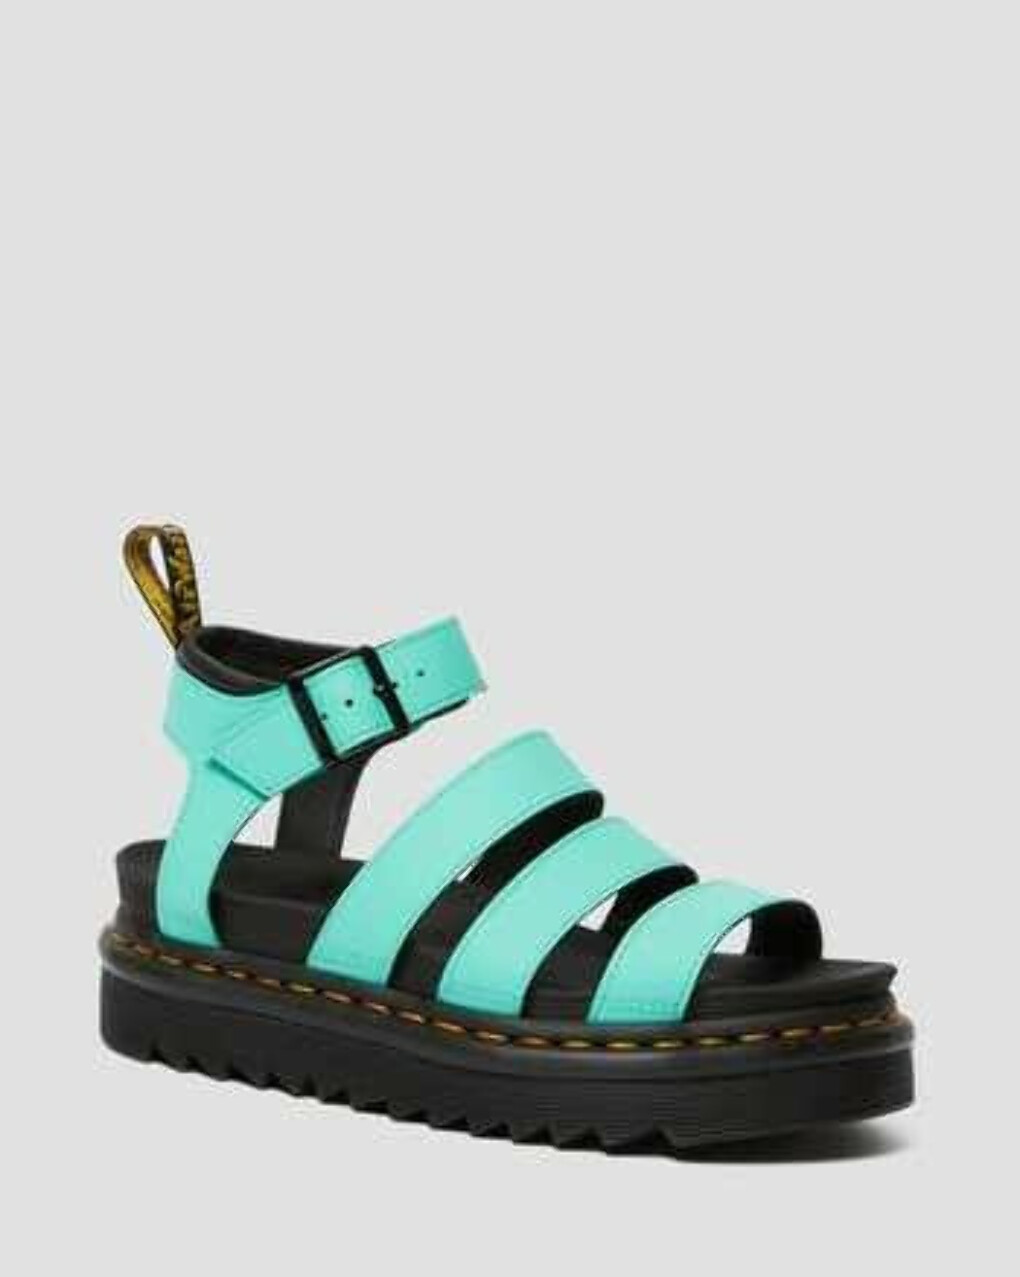 DR MARTENS BLAIRE WOMEN'S HYDRO LEATHER GLADIATOR SANDALS